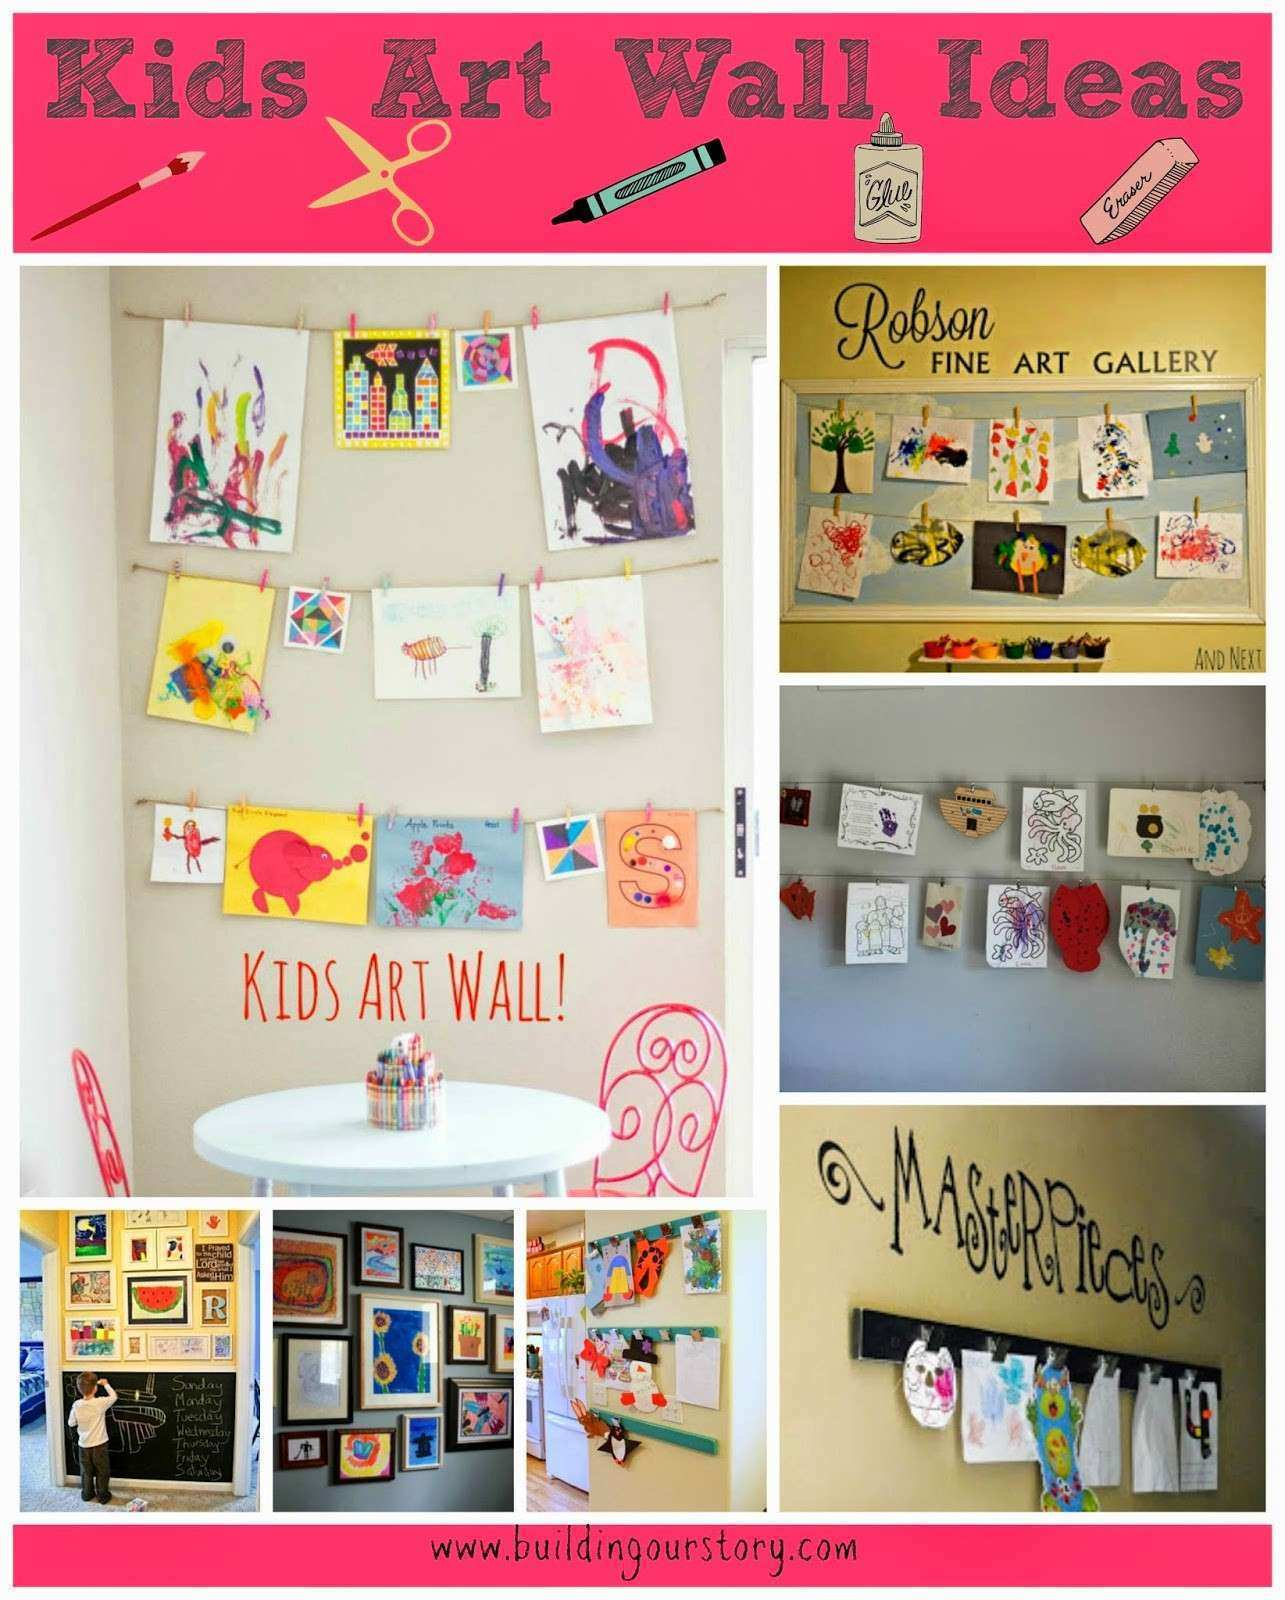 Kids Art Wall Ideas Building Our Story